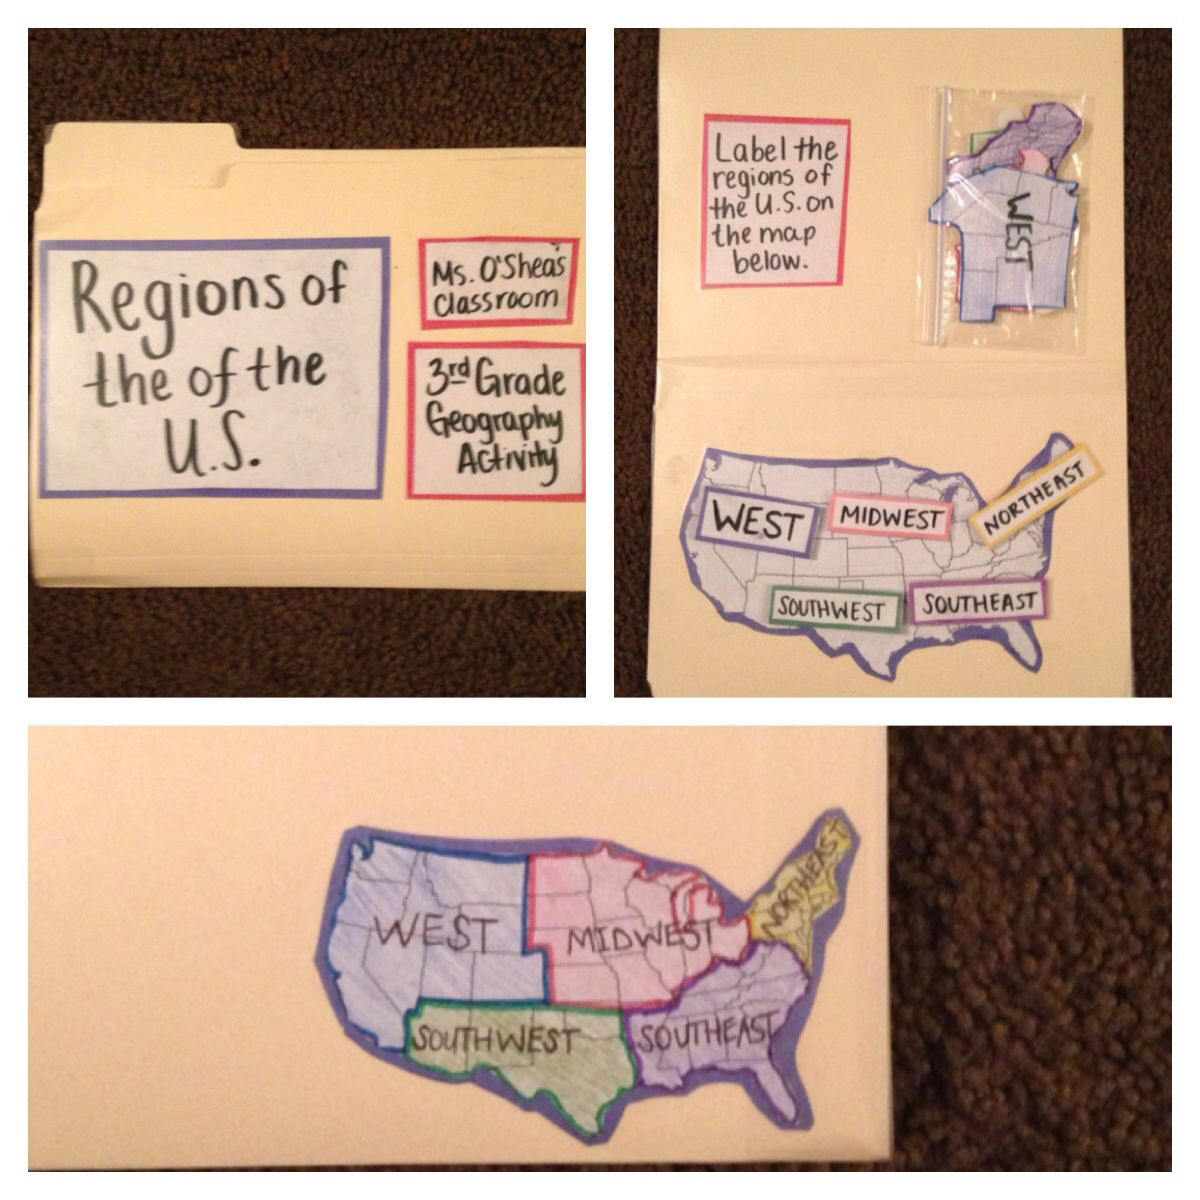 Regions Of The United States 2nd Geography Activity